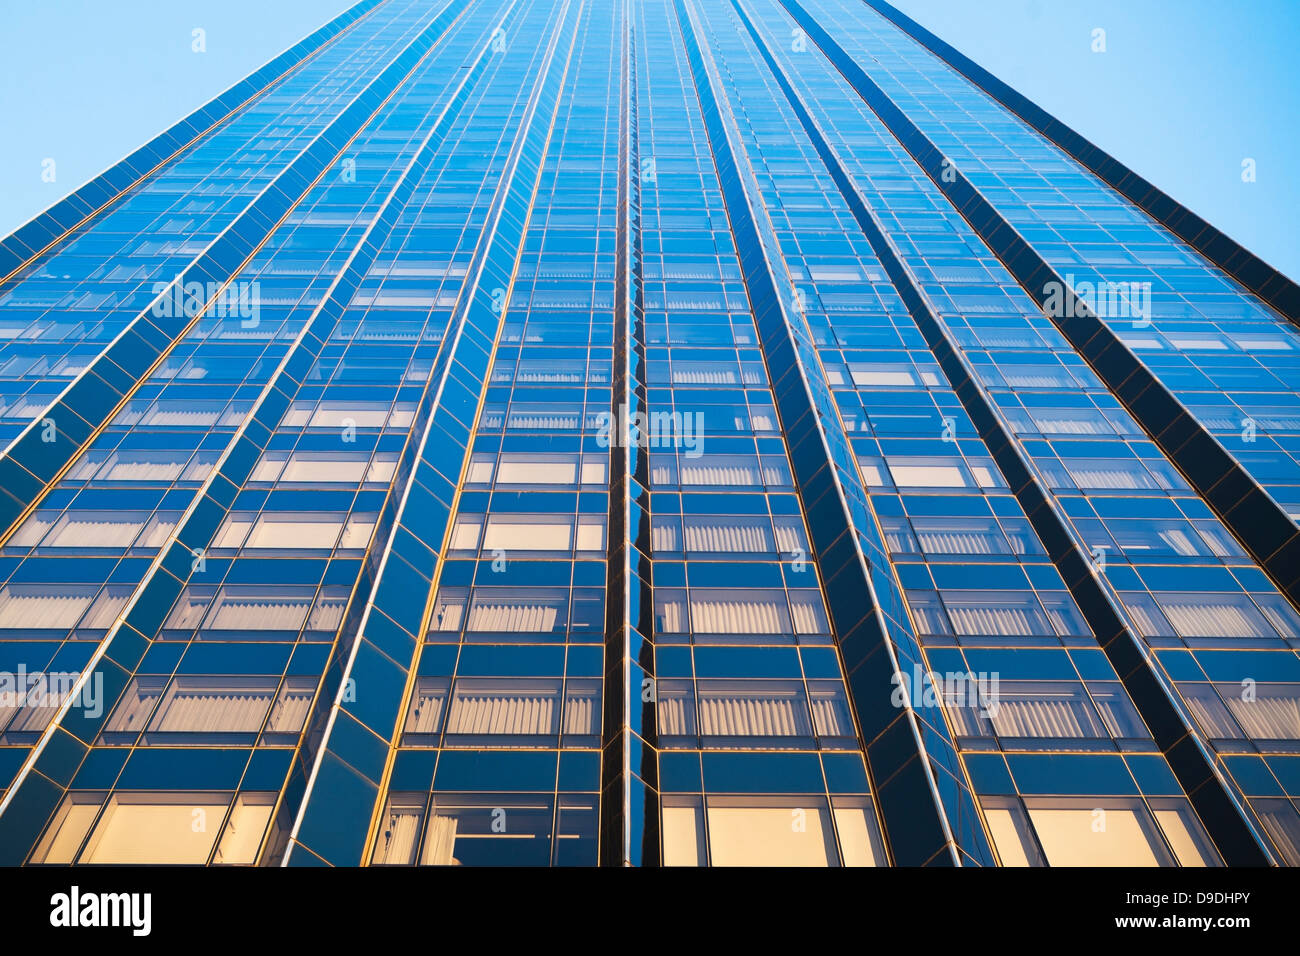 Oblique view of skyscraper, New York City, USA - Stock Image